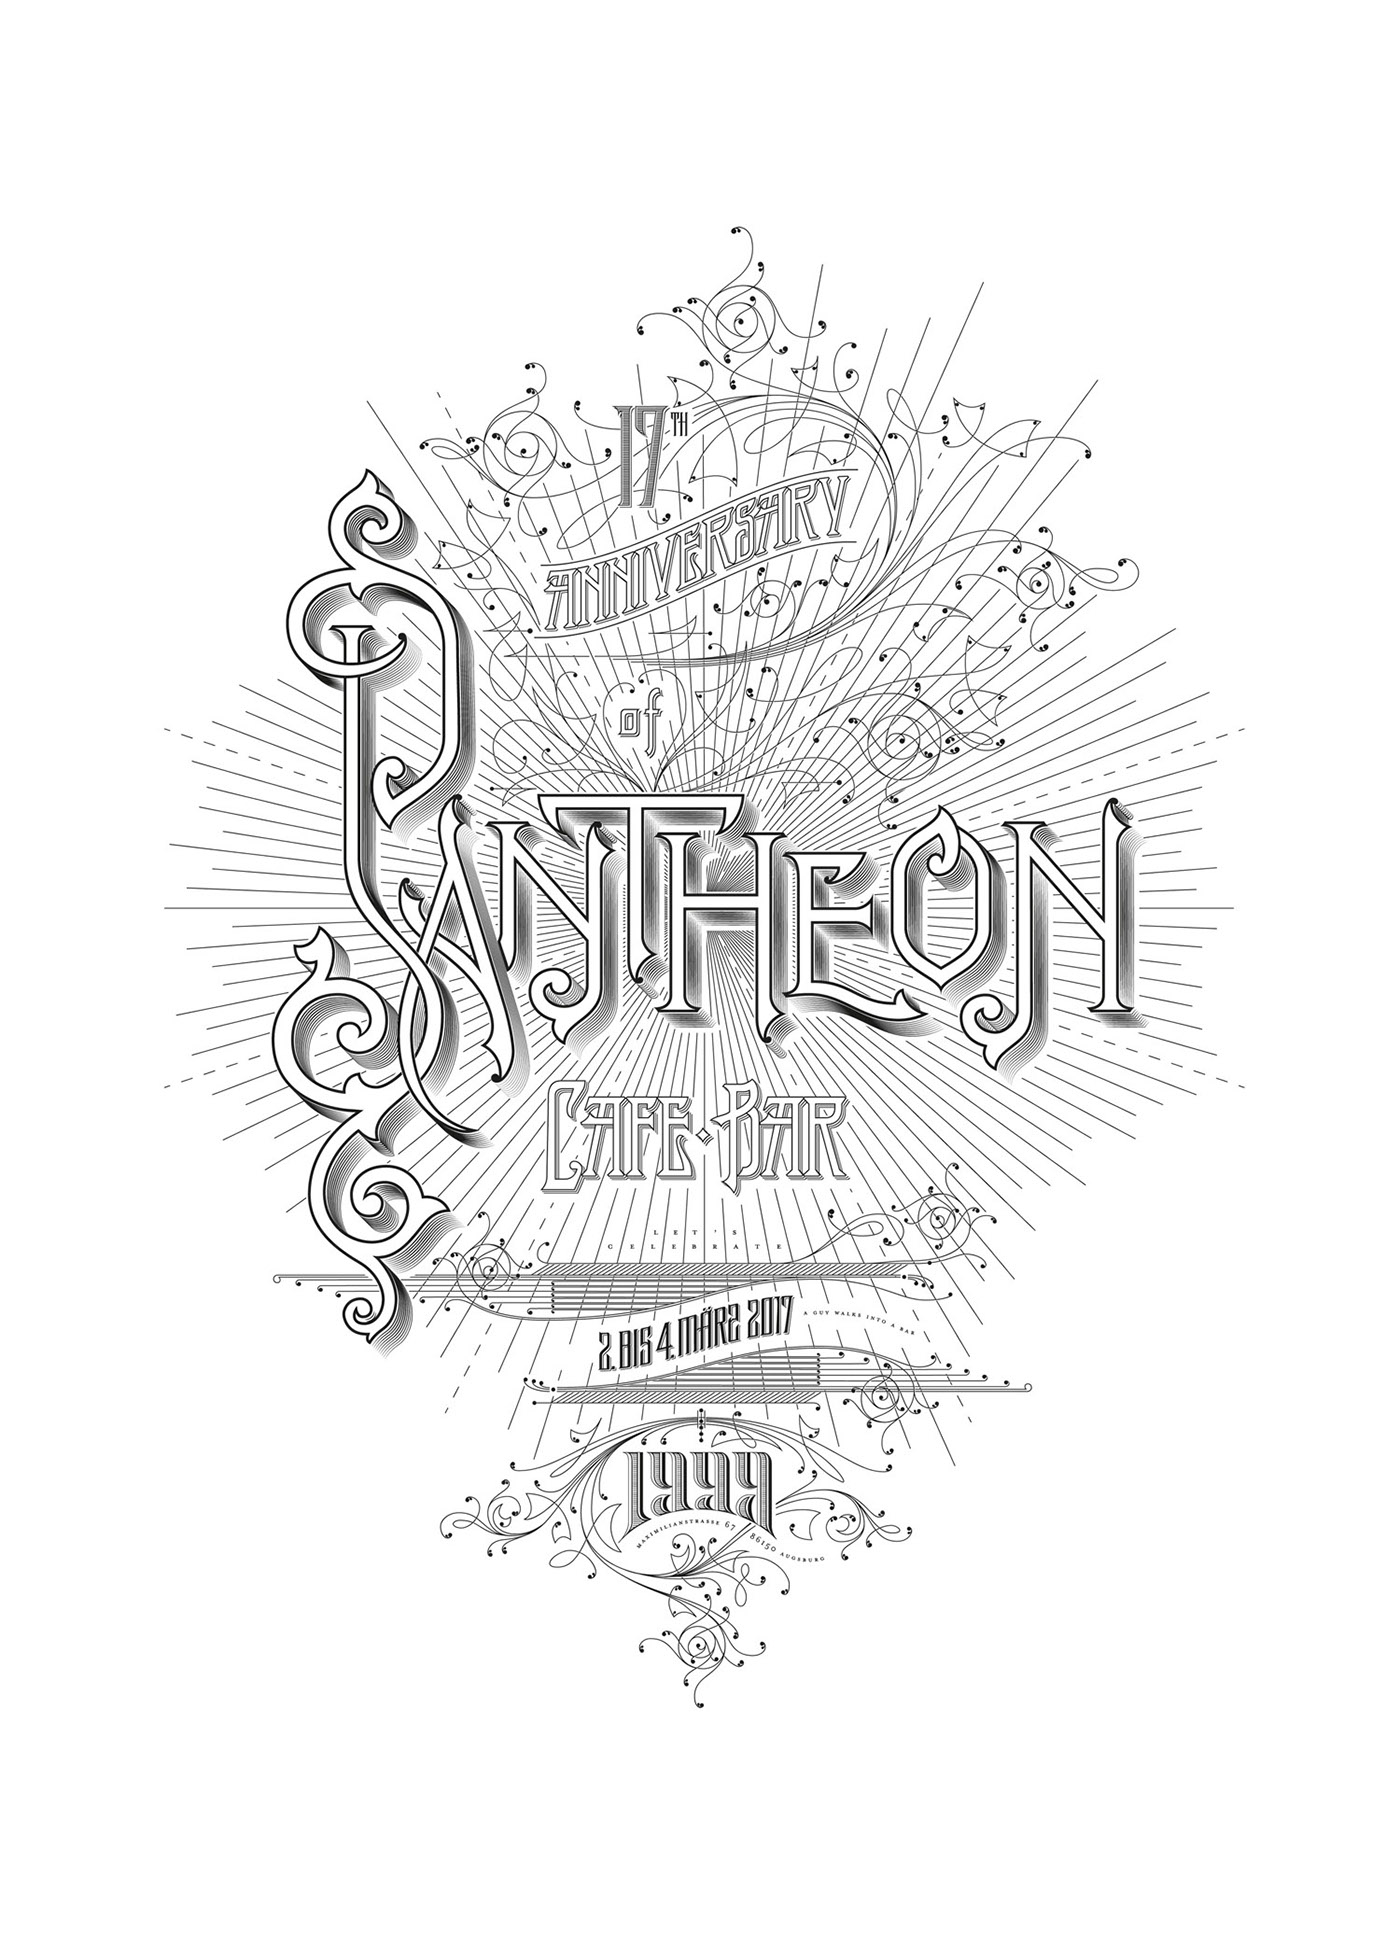 design poster typography   etching lettering sanborn insurance maps laser graphicdesign creative papers conference ILLUSTRATION